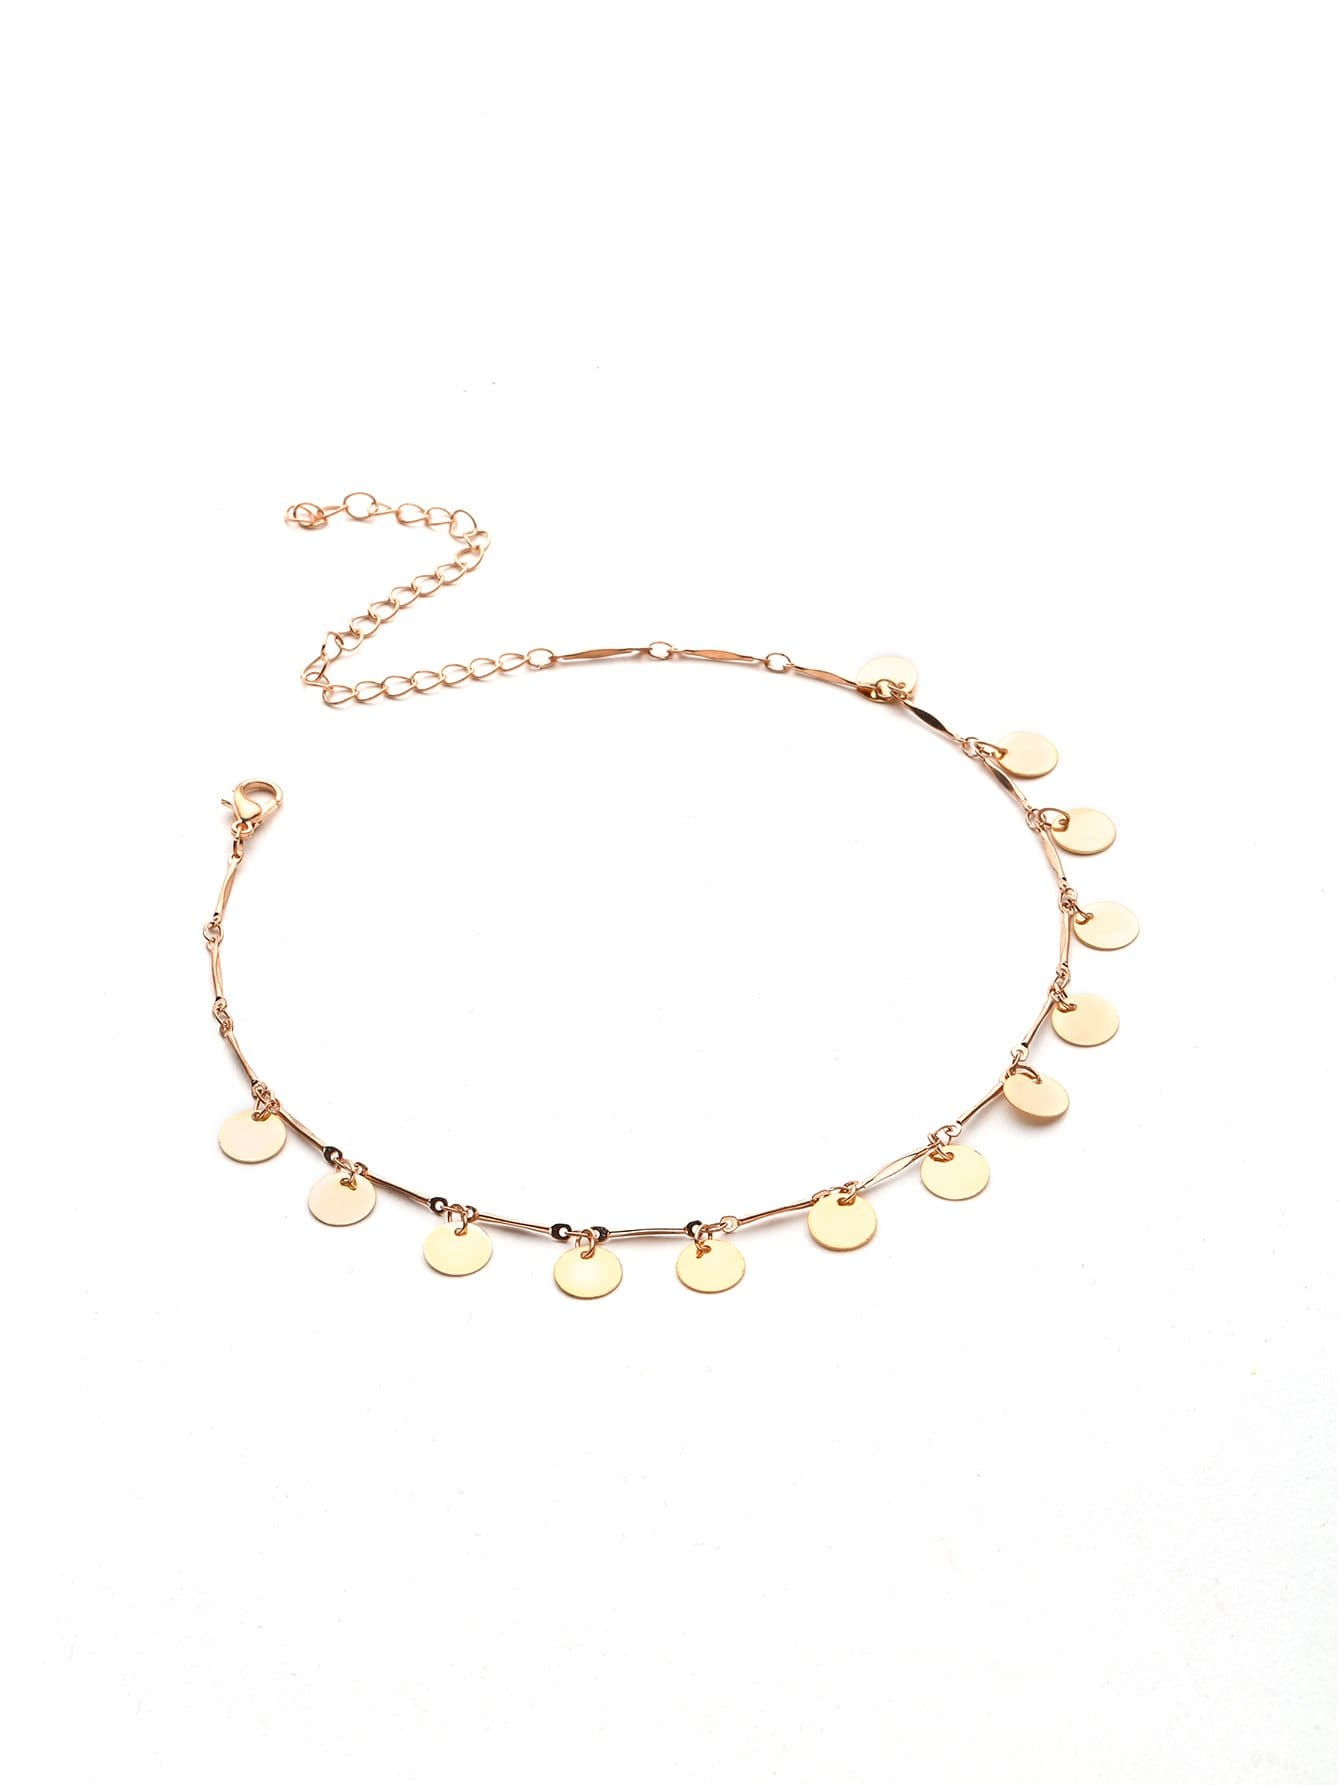 Sequin Embellished Chain Choker - Necklaces